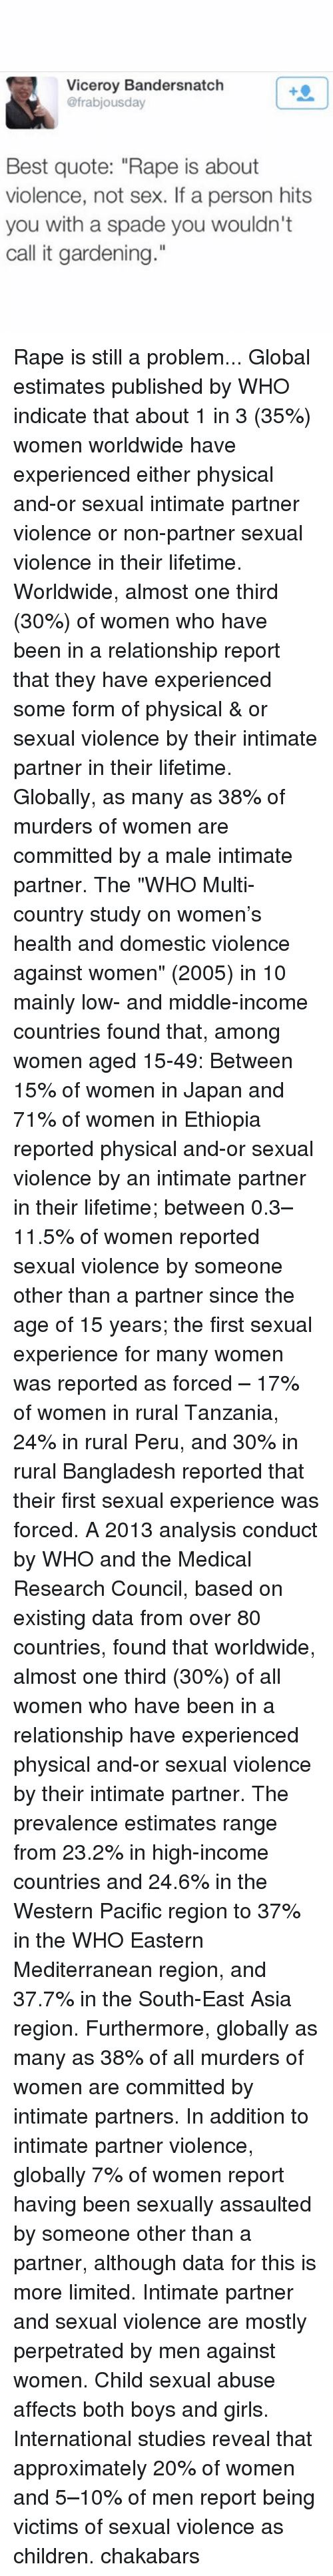 """tanzania: Viceroy Bandersnatch  @frabjousday  Best quote: """"Rape is about  violence, not sex. If a person hits  you with a spade you wouldn't  call it gardening."""" Rape is still a problem... Global estimates published by WHO indicate that about 1 in 3 (35%) women worldwide have experienced either physical and-or sexual intimate partner violence or non-partner sexual violence in their lifetime. Worldwide, almost one third (30%) of women who have been in a relationship report that they have experienced some form of physical & or sexual violence by their intimate partner in their lifetime. Globally, as many as 38% of murders of women are committed by a male intimate partner. The """"WHO Multi-country study on women's health and domestic violence against women"""" (2005) in 10 mainly low- and middle-income countries found that, among women aged 15-49: Between 15% of women in Japan and 71% of women in Ethiopia reported physical and-or sexual violence by an intimate partner in their lifetime; between 0.3–11.5% of women reported sexual violence by someone other than a partner since the age of 15 years; the first sexual experience for many women was reported as forced – 17% of women in rural Tanzania, 24% in rural Peru, and 30% in rural Bangladesh reported that their first sexual experience was forced. A 2013 analysis conduct by WHO and the Medical Research Council, based on existing data from over 80 countries, found that worldwide, almost one third (30%) of all women who have been in a relationship have experienced physical and-or sexual violence by their intimate partner. The prevalence estimates range from 23.2% in high-income countries and 24.6% in the Western Pacific region to 37% in the WHO Eastern Mediterranean region, and 37.7% in the South-East Asia region. Furthermore, globally as many as 38% of all murders of women are committed by intimate partners. In addition to intimate partner violence, globally 7% of women report having been sexually assaulted by someone other tha"""